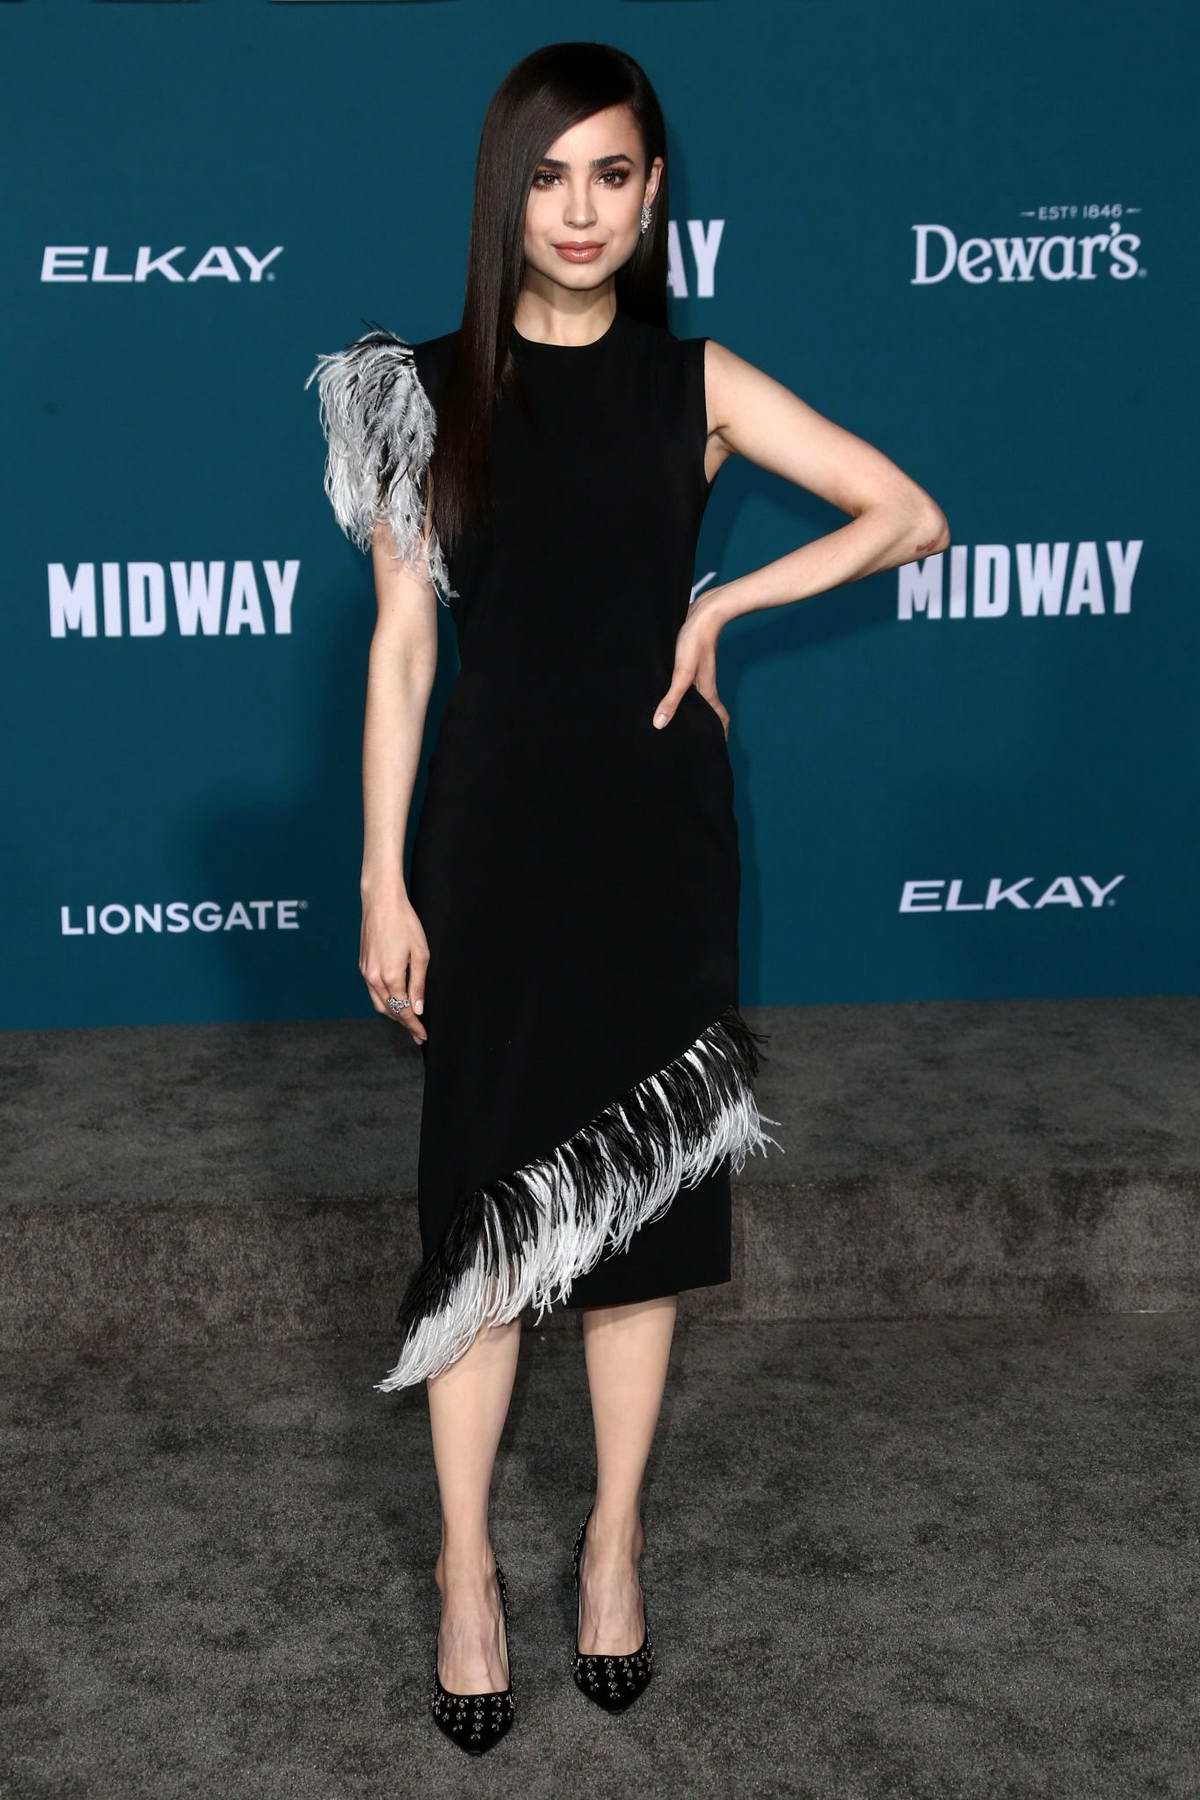 Sofia Carson attends the Premiere of 'Midway' at Regency Village Theatre in Westwood, California